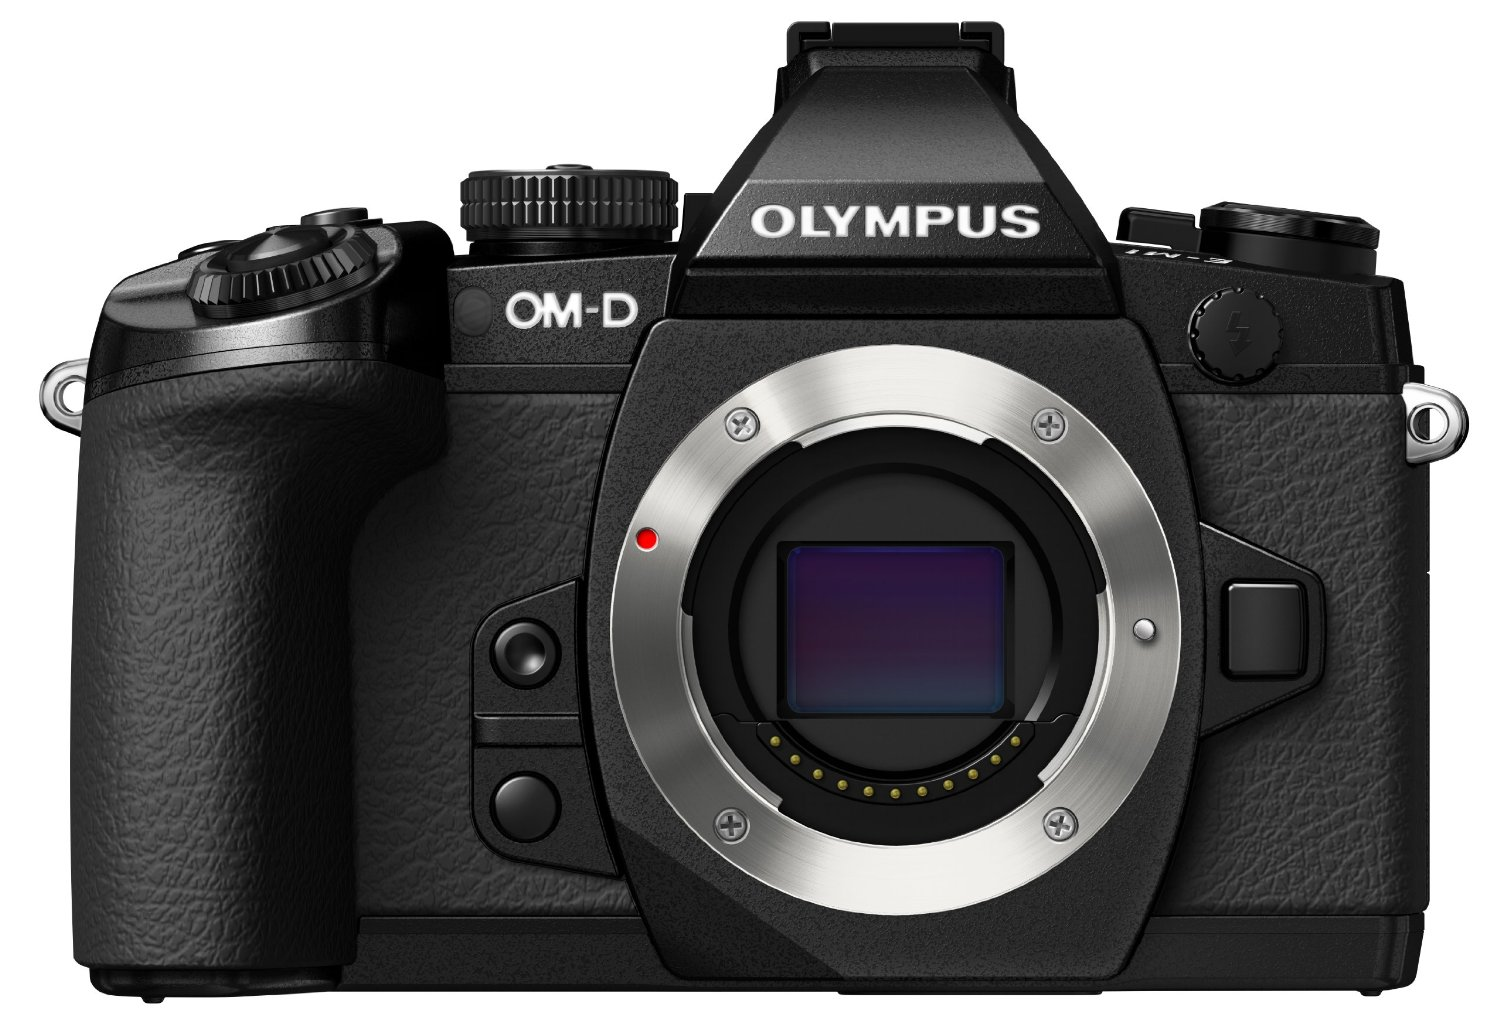 olympus om d e m1 user guide updated photolisticlife rh photolisticlife com olympus om d em 1 user manual olympus om d em 1 user manual